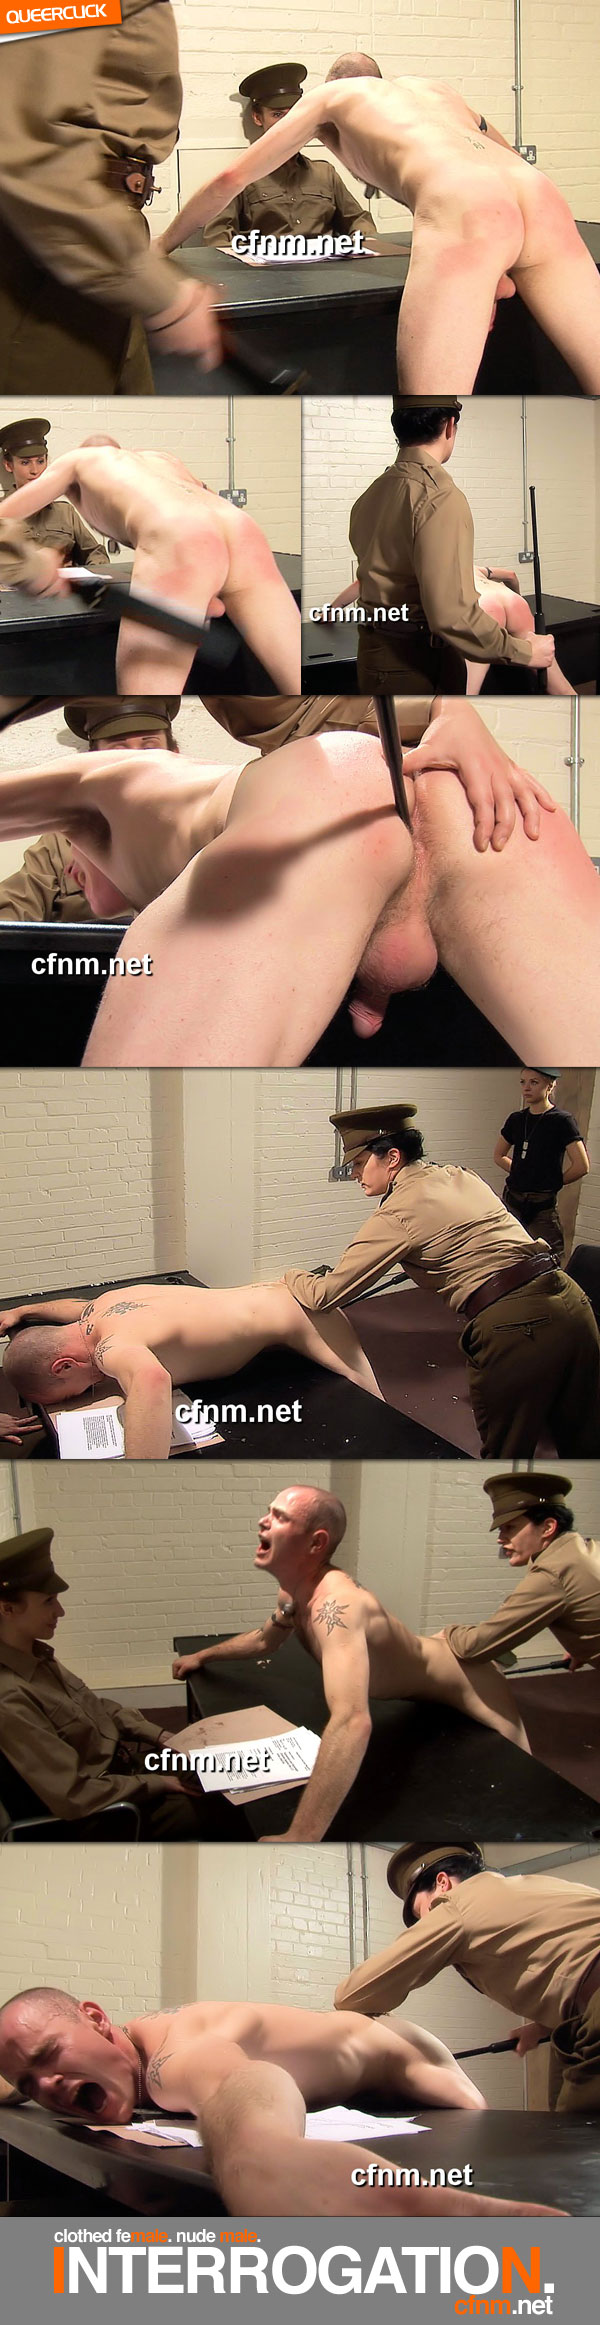 CFNM.net: Interrogation